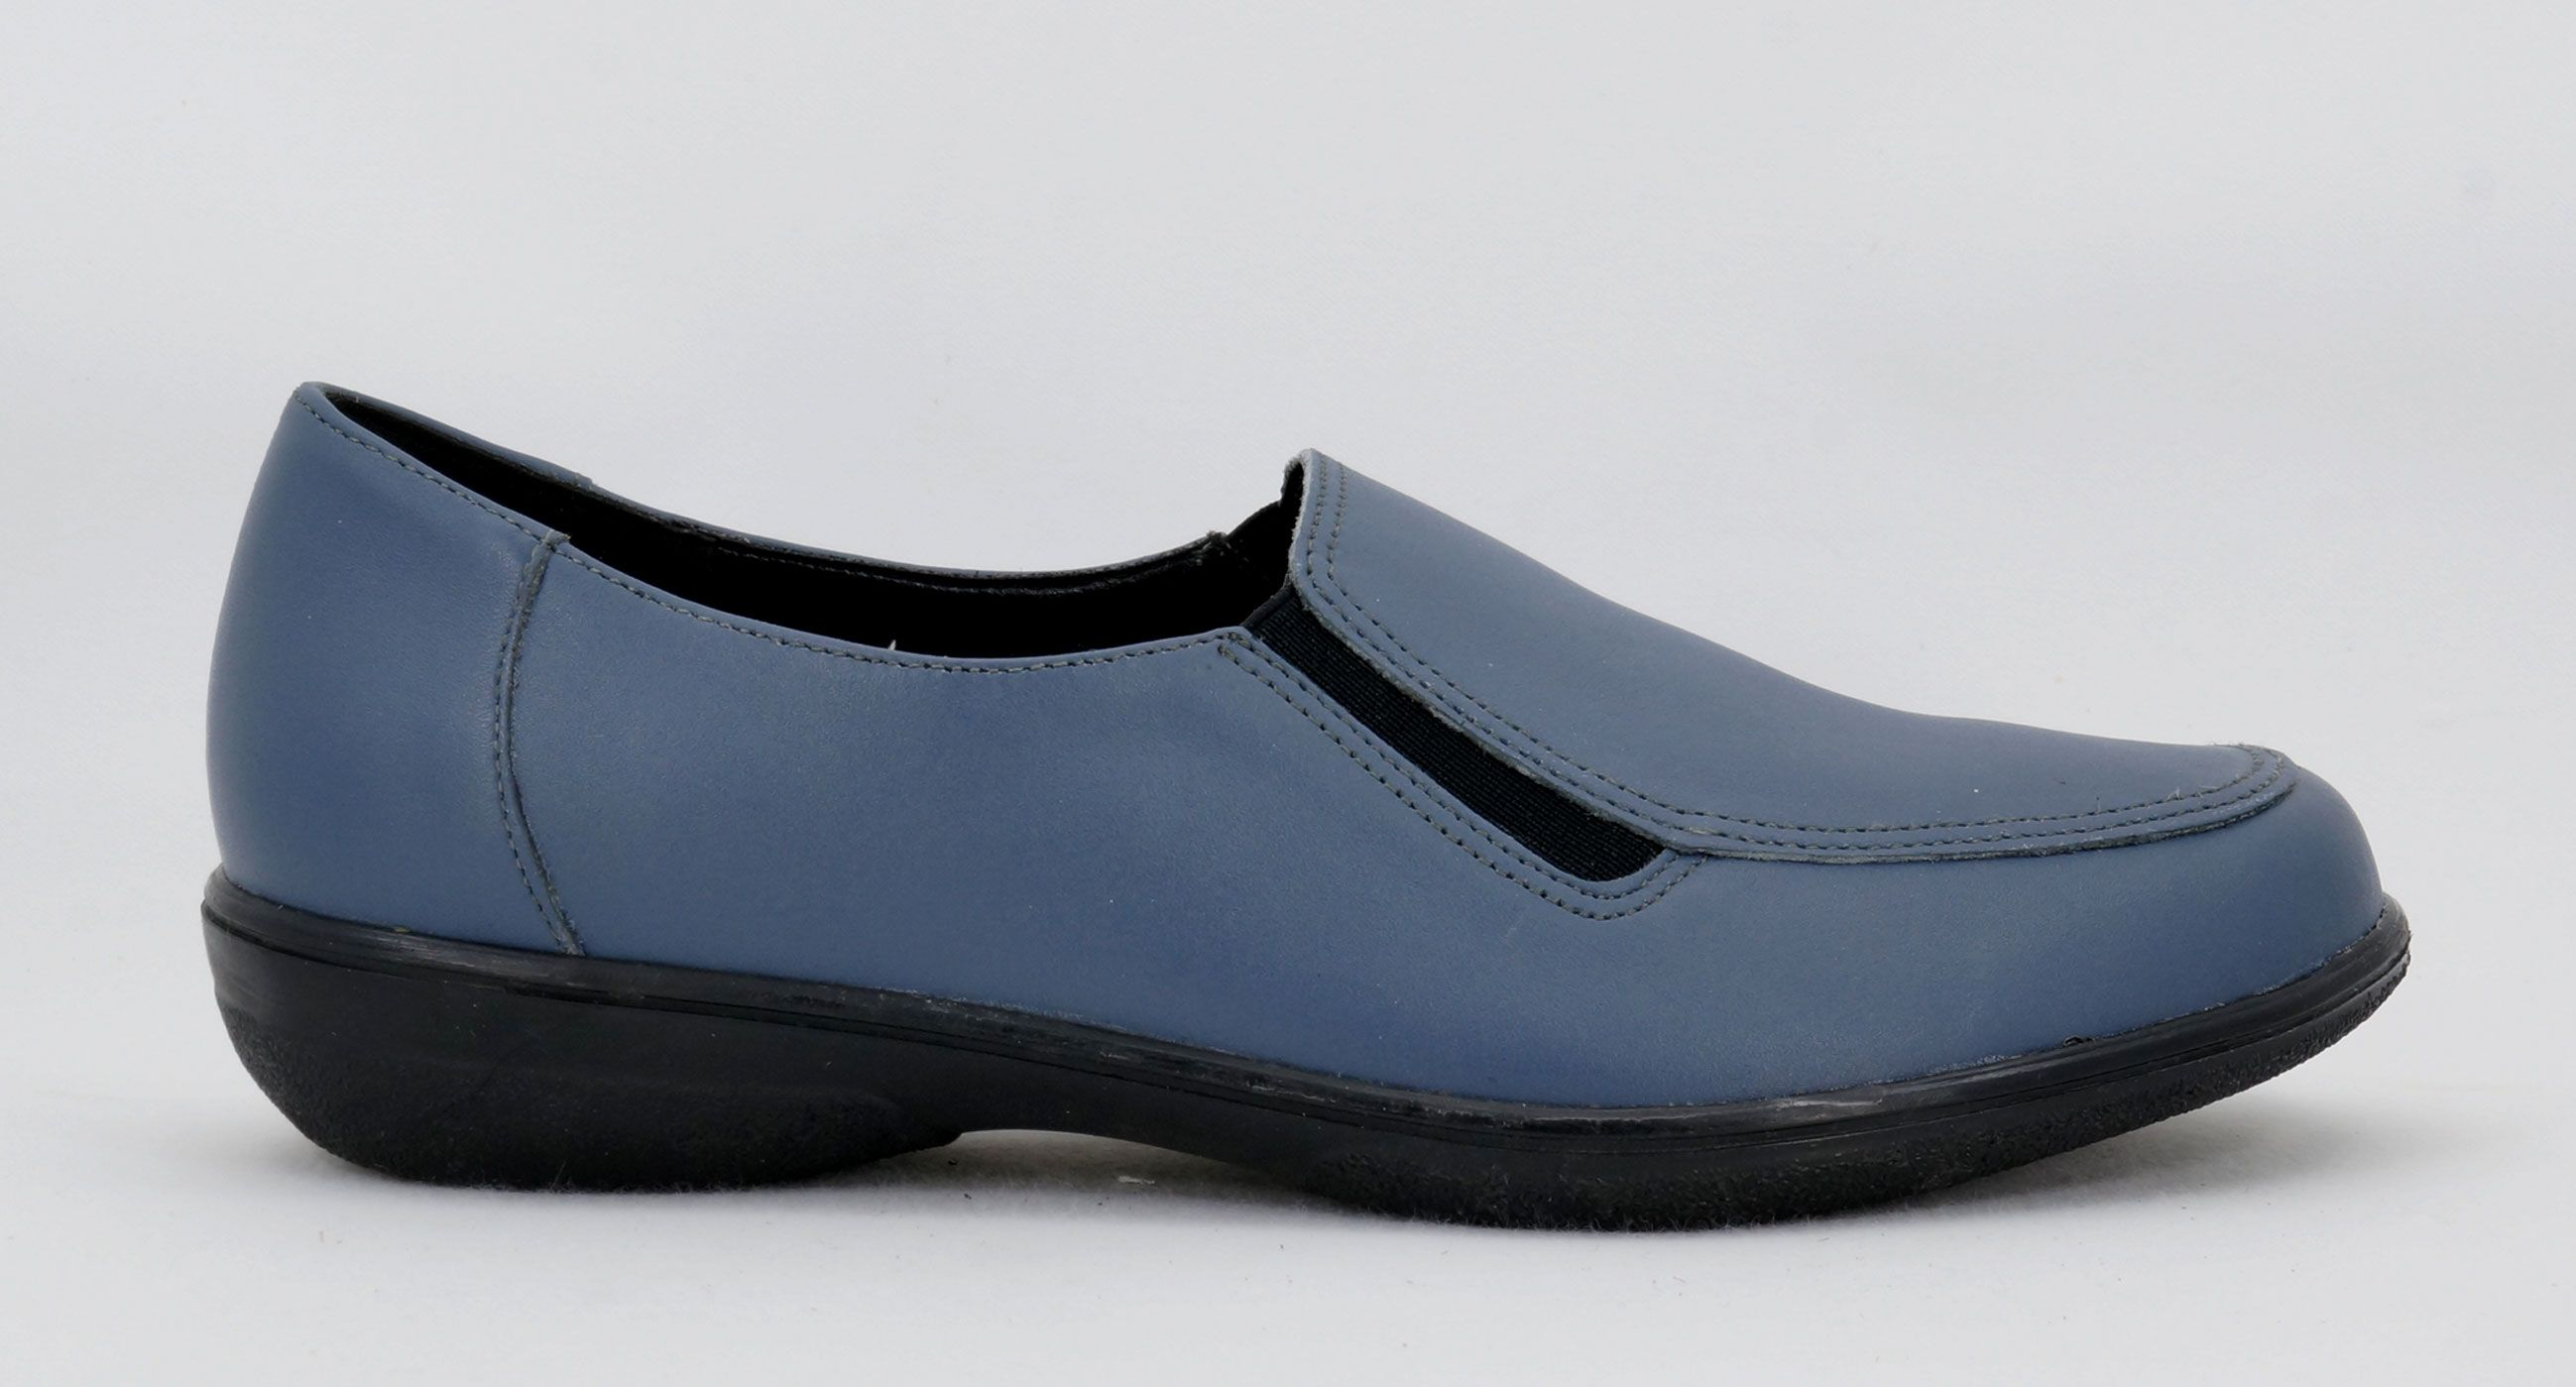 Natural Steps Health Range Handcrafted Genuine Leather Shoes Genuine Leather Shoes Leather Shoes Woman Leather